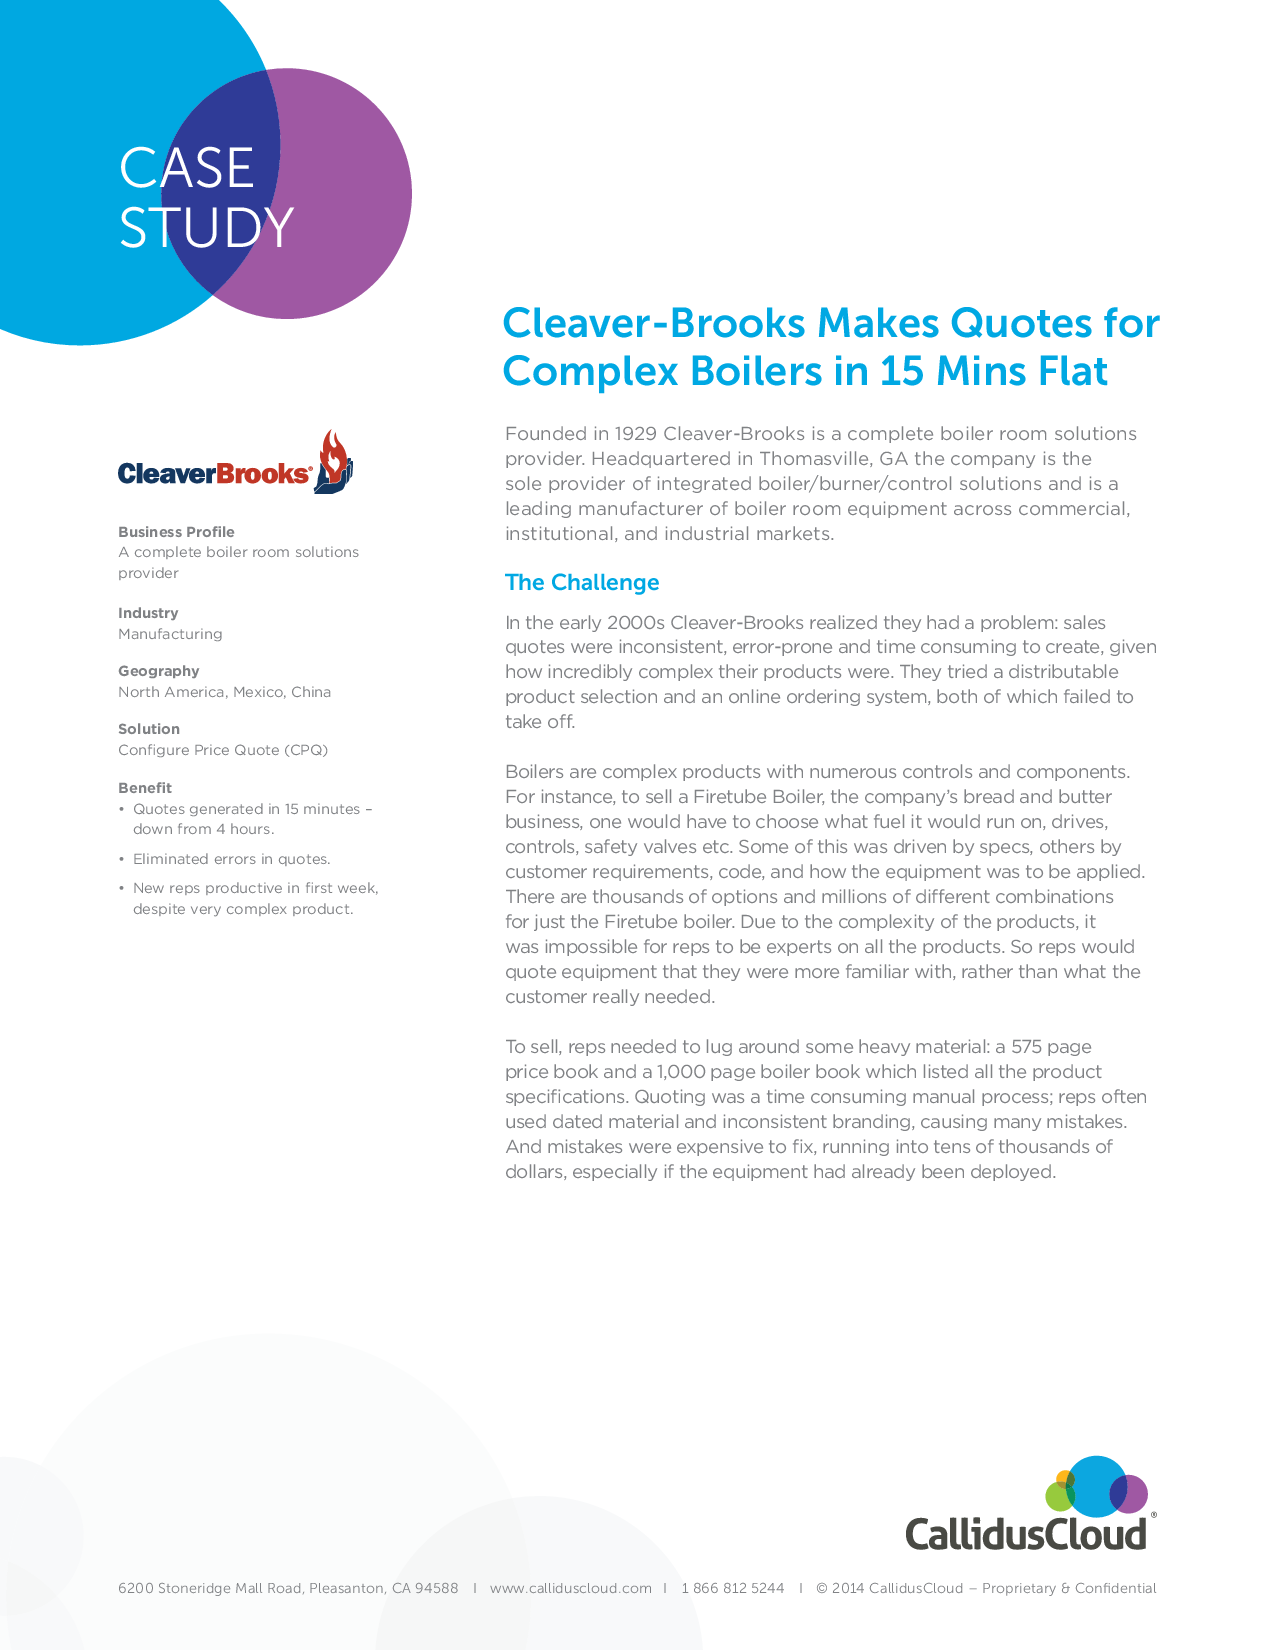 Cleaver-Brooks Makes Quotes for Complex Boilers in 15 Mins F